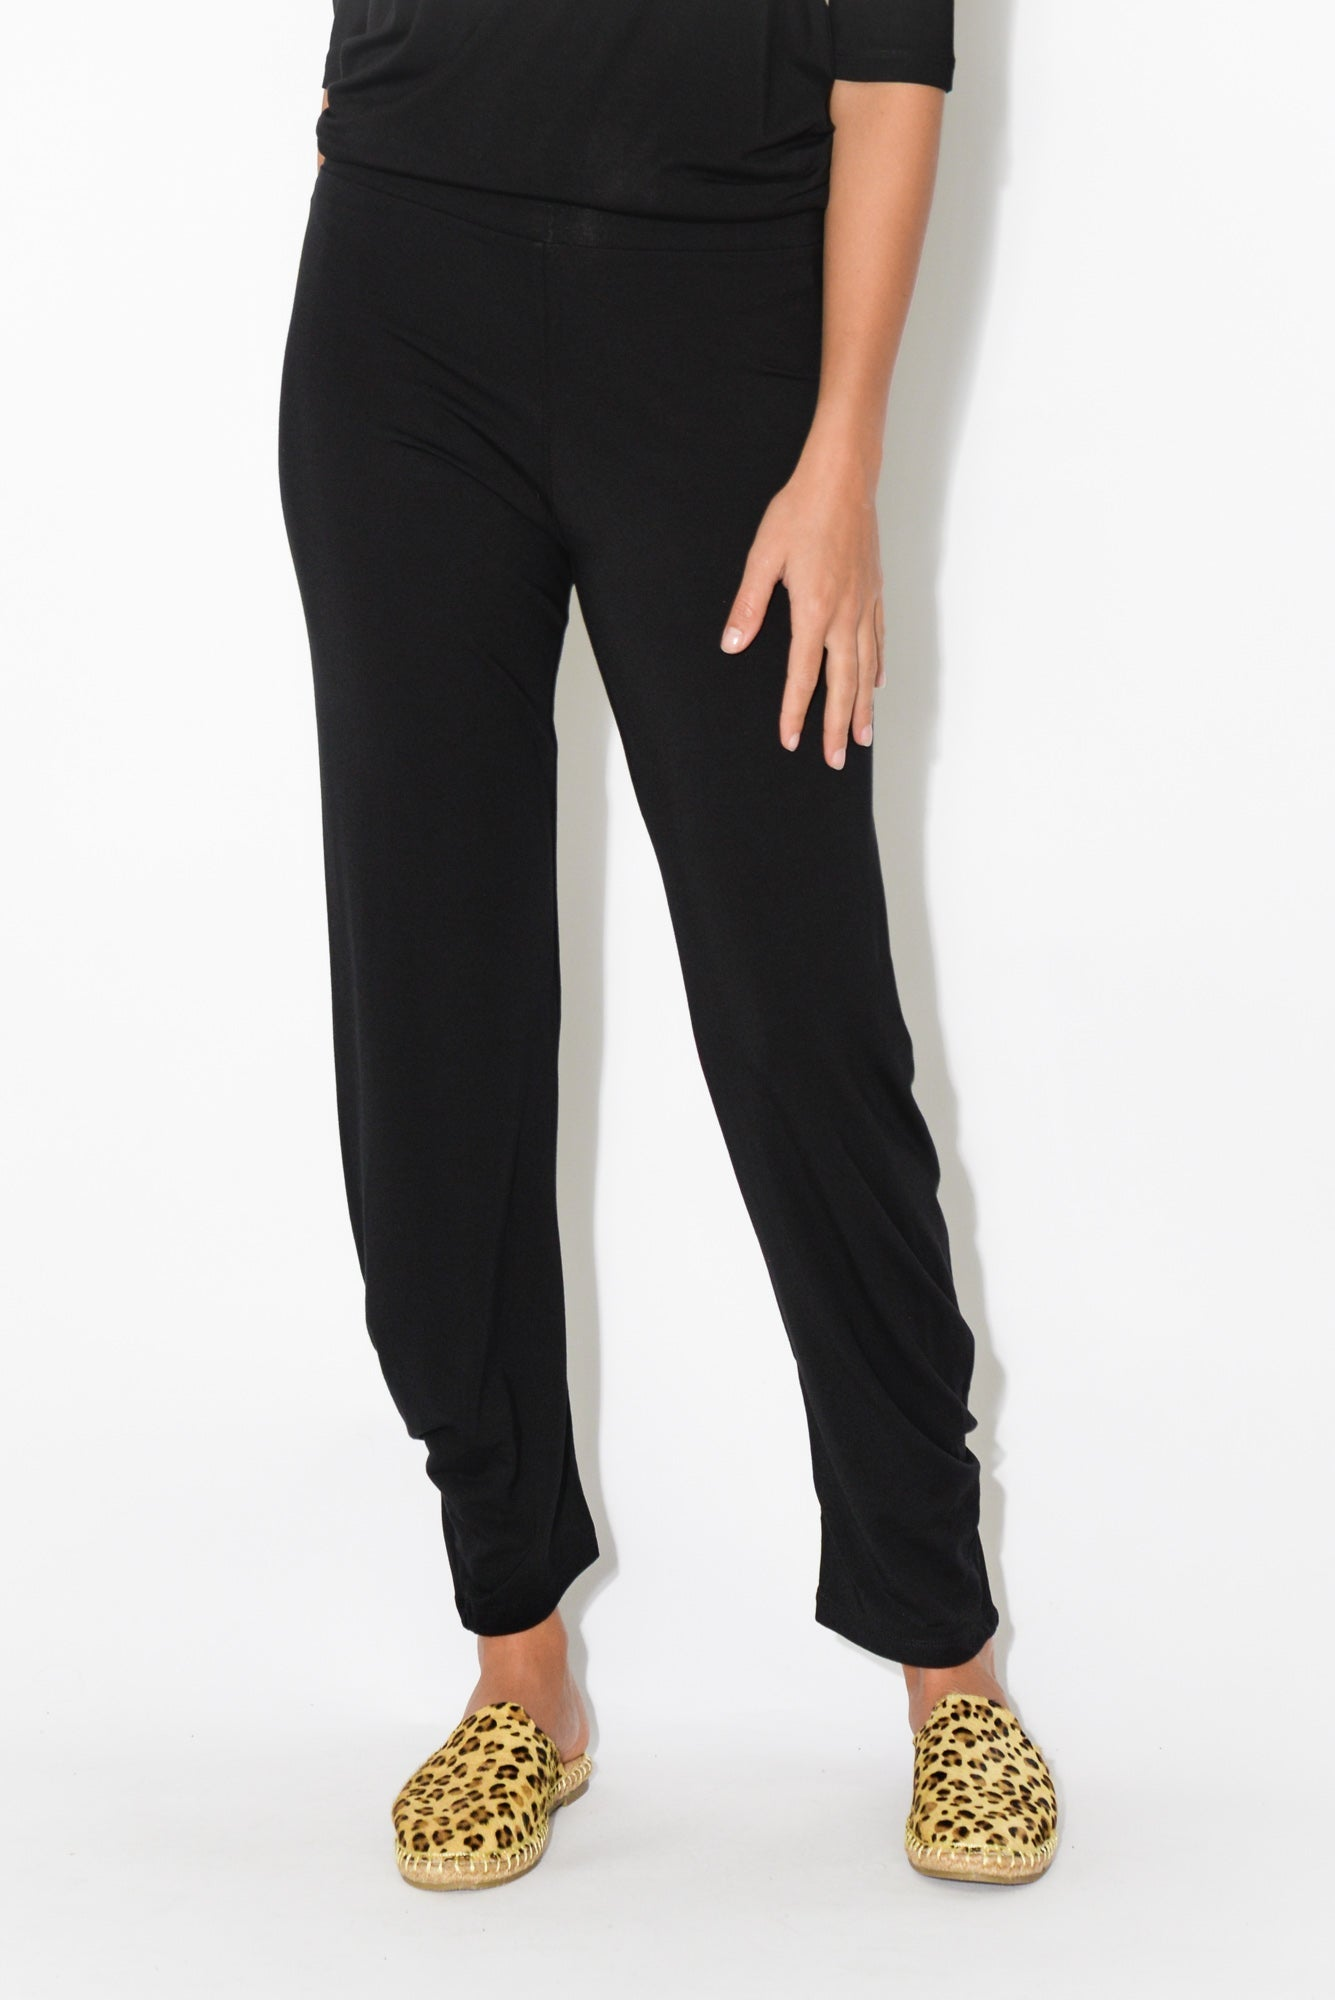 Black Bamboo Key Pant